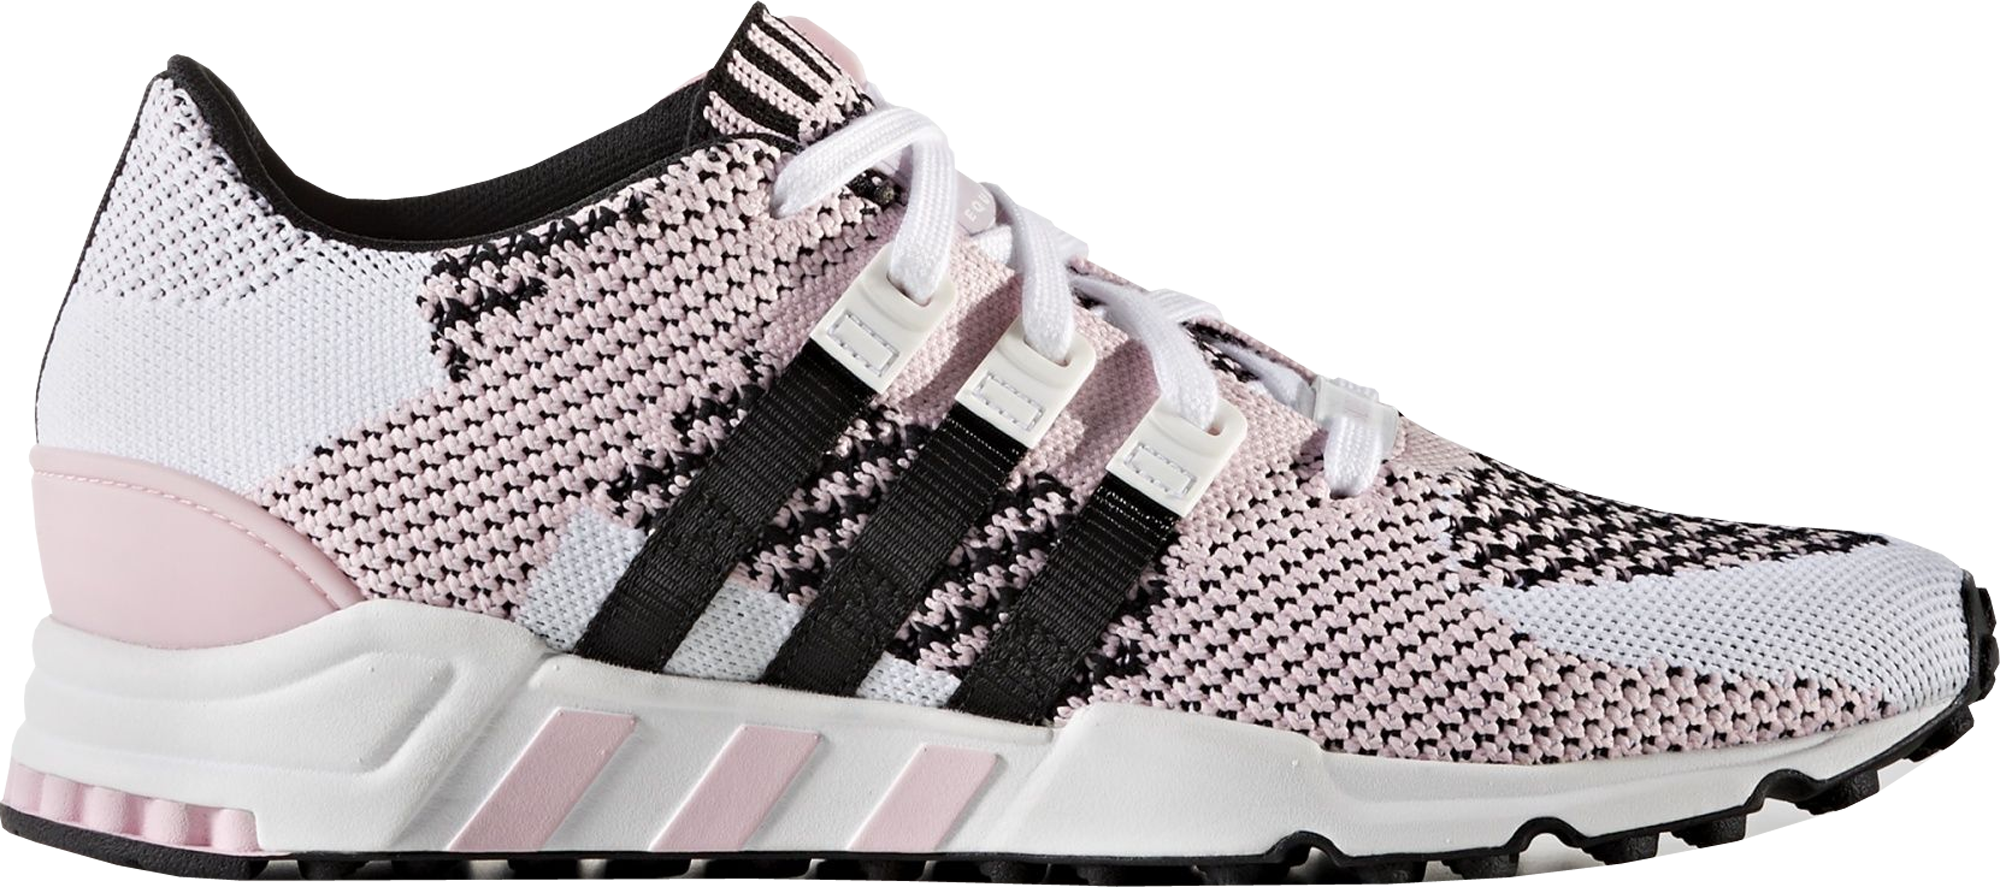 adidas EQT Support RF Primeknit Pink Black (W) - StockX News